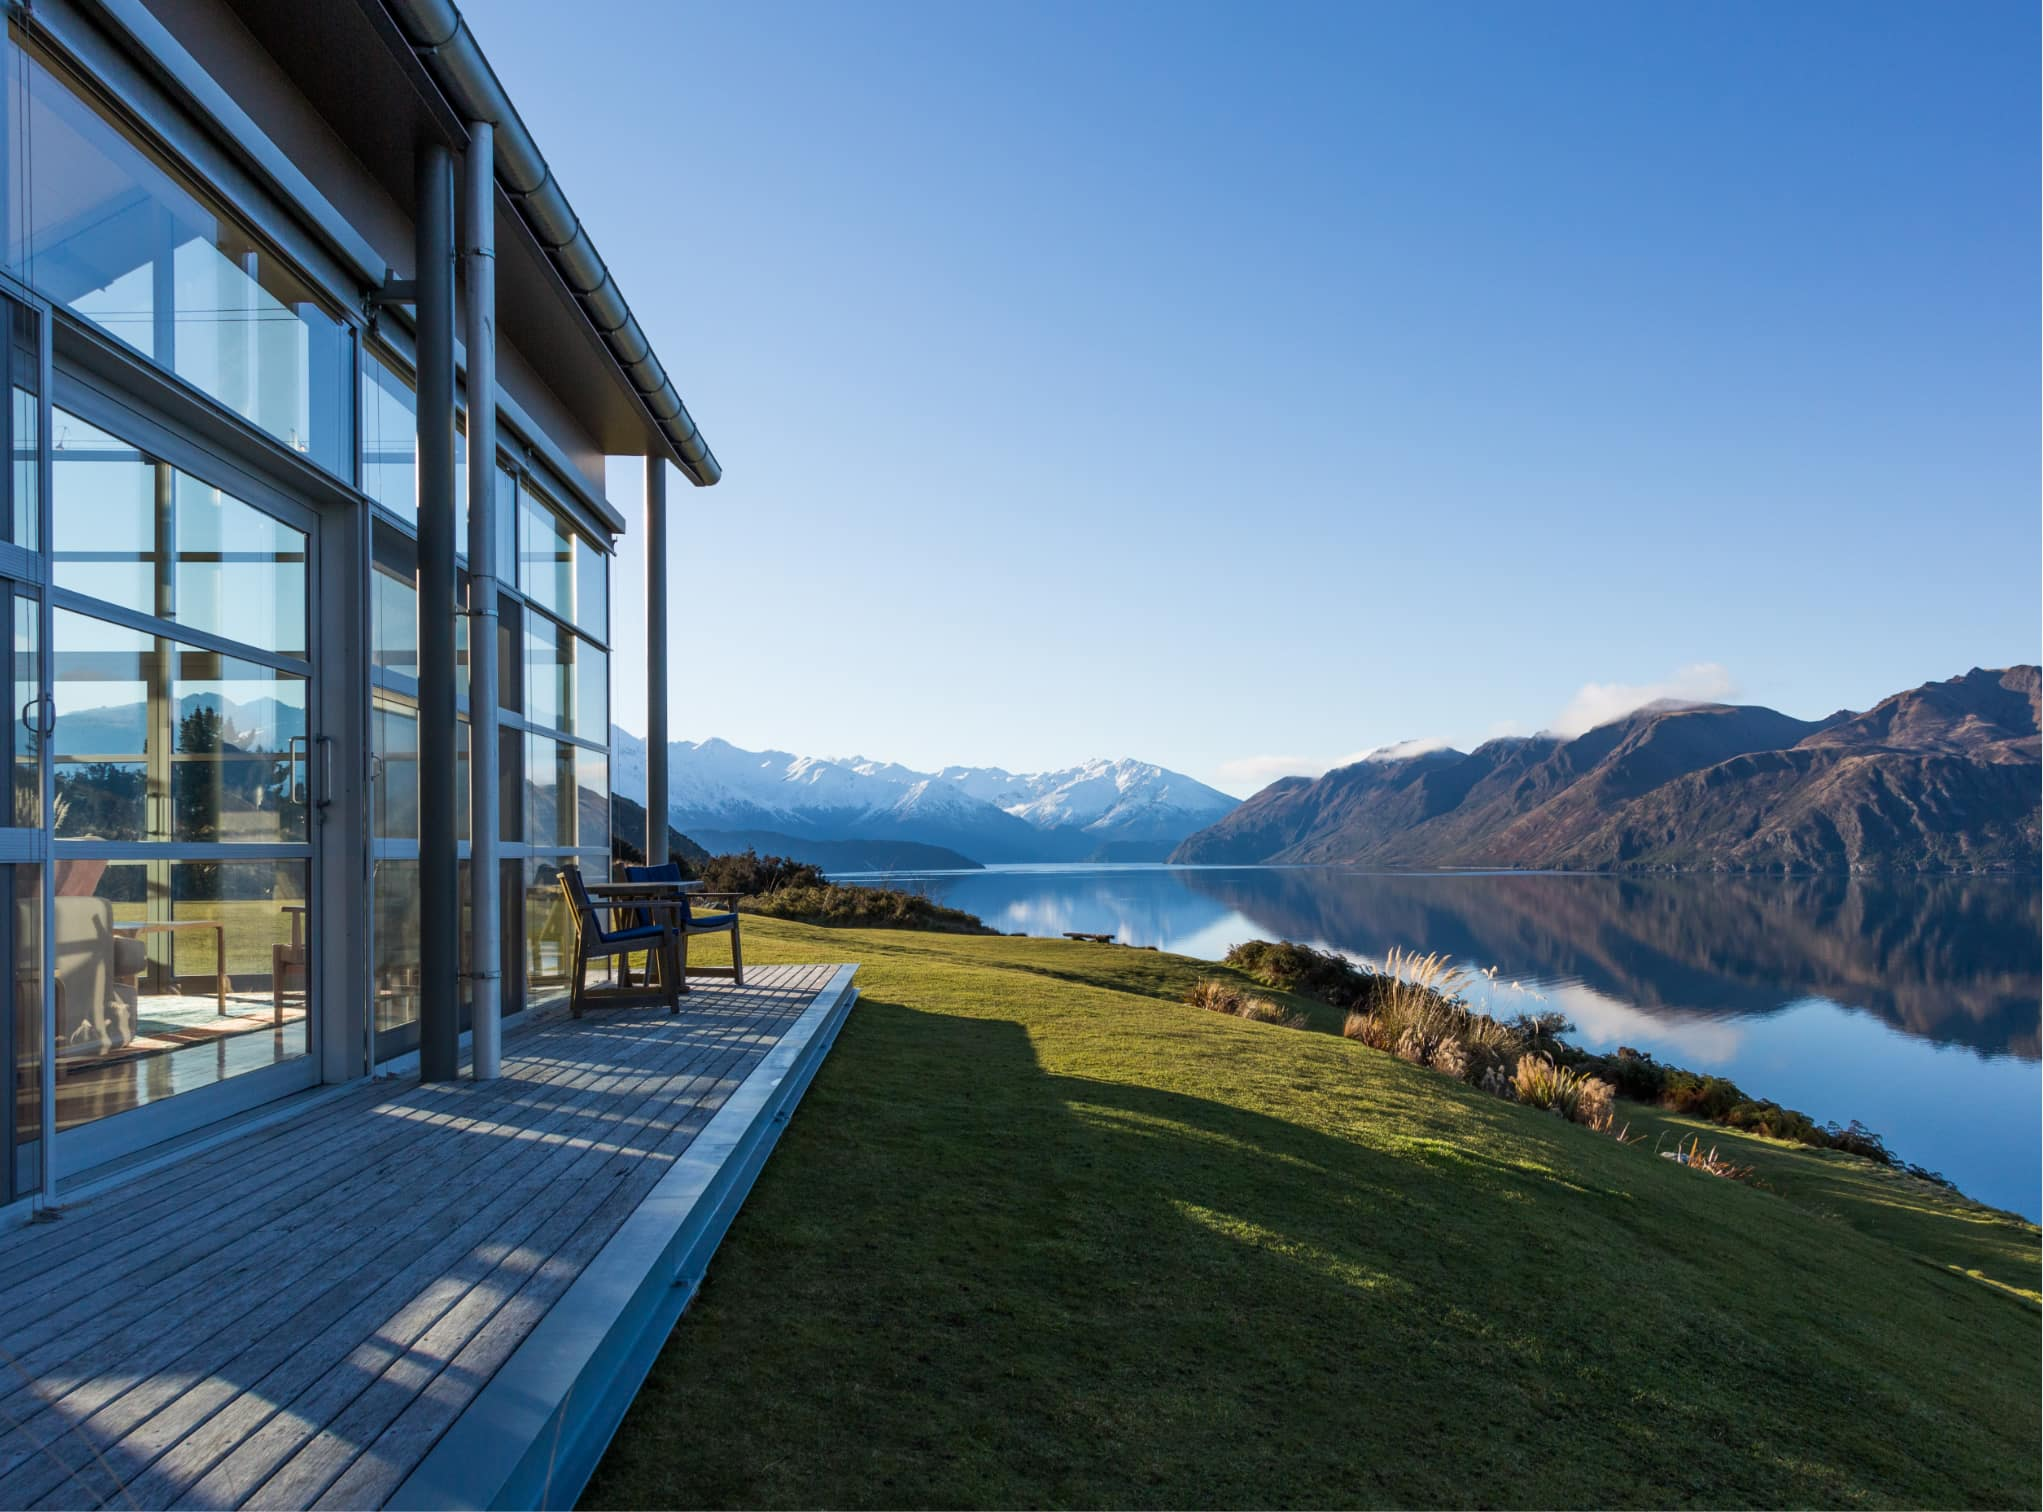 View over Lake Wanaka from Whare Kea luxury accommodations